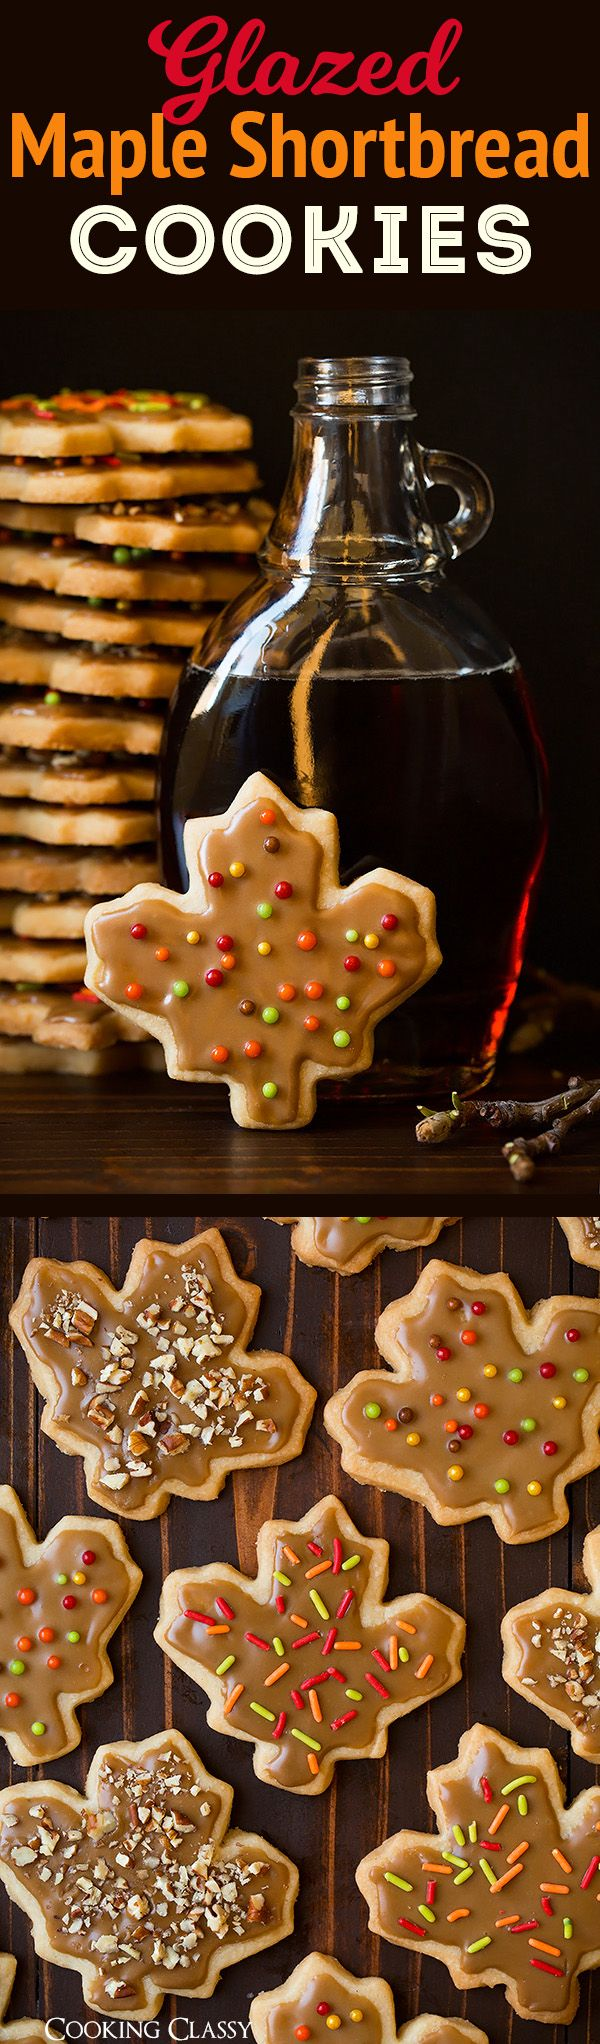 HOLIDAY BOARD: Glazed Maple Shortbread Cookies - Cooking Classy